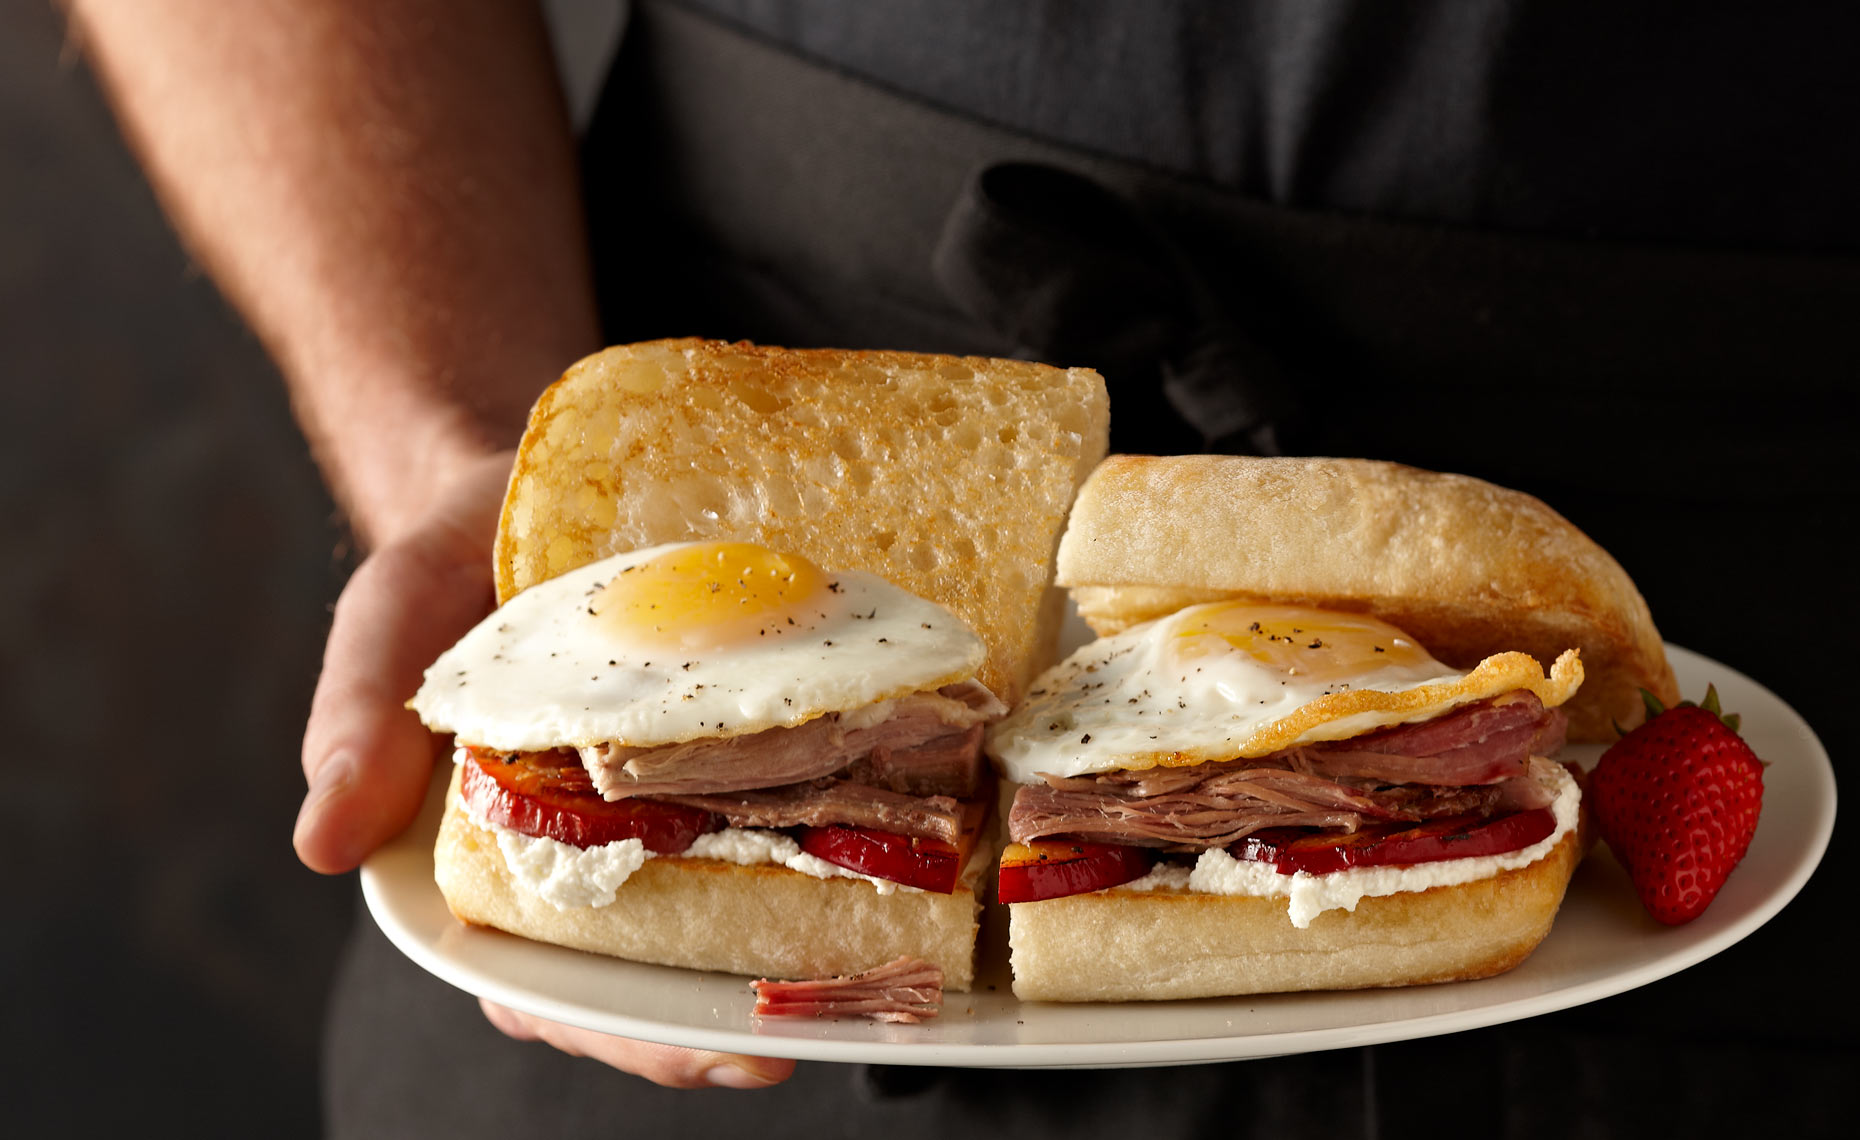 pizza-pasta-bread-photographers-sandwich-egg-ham-waiter-03